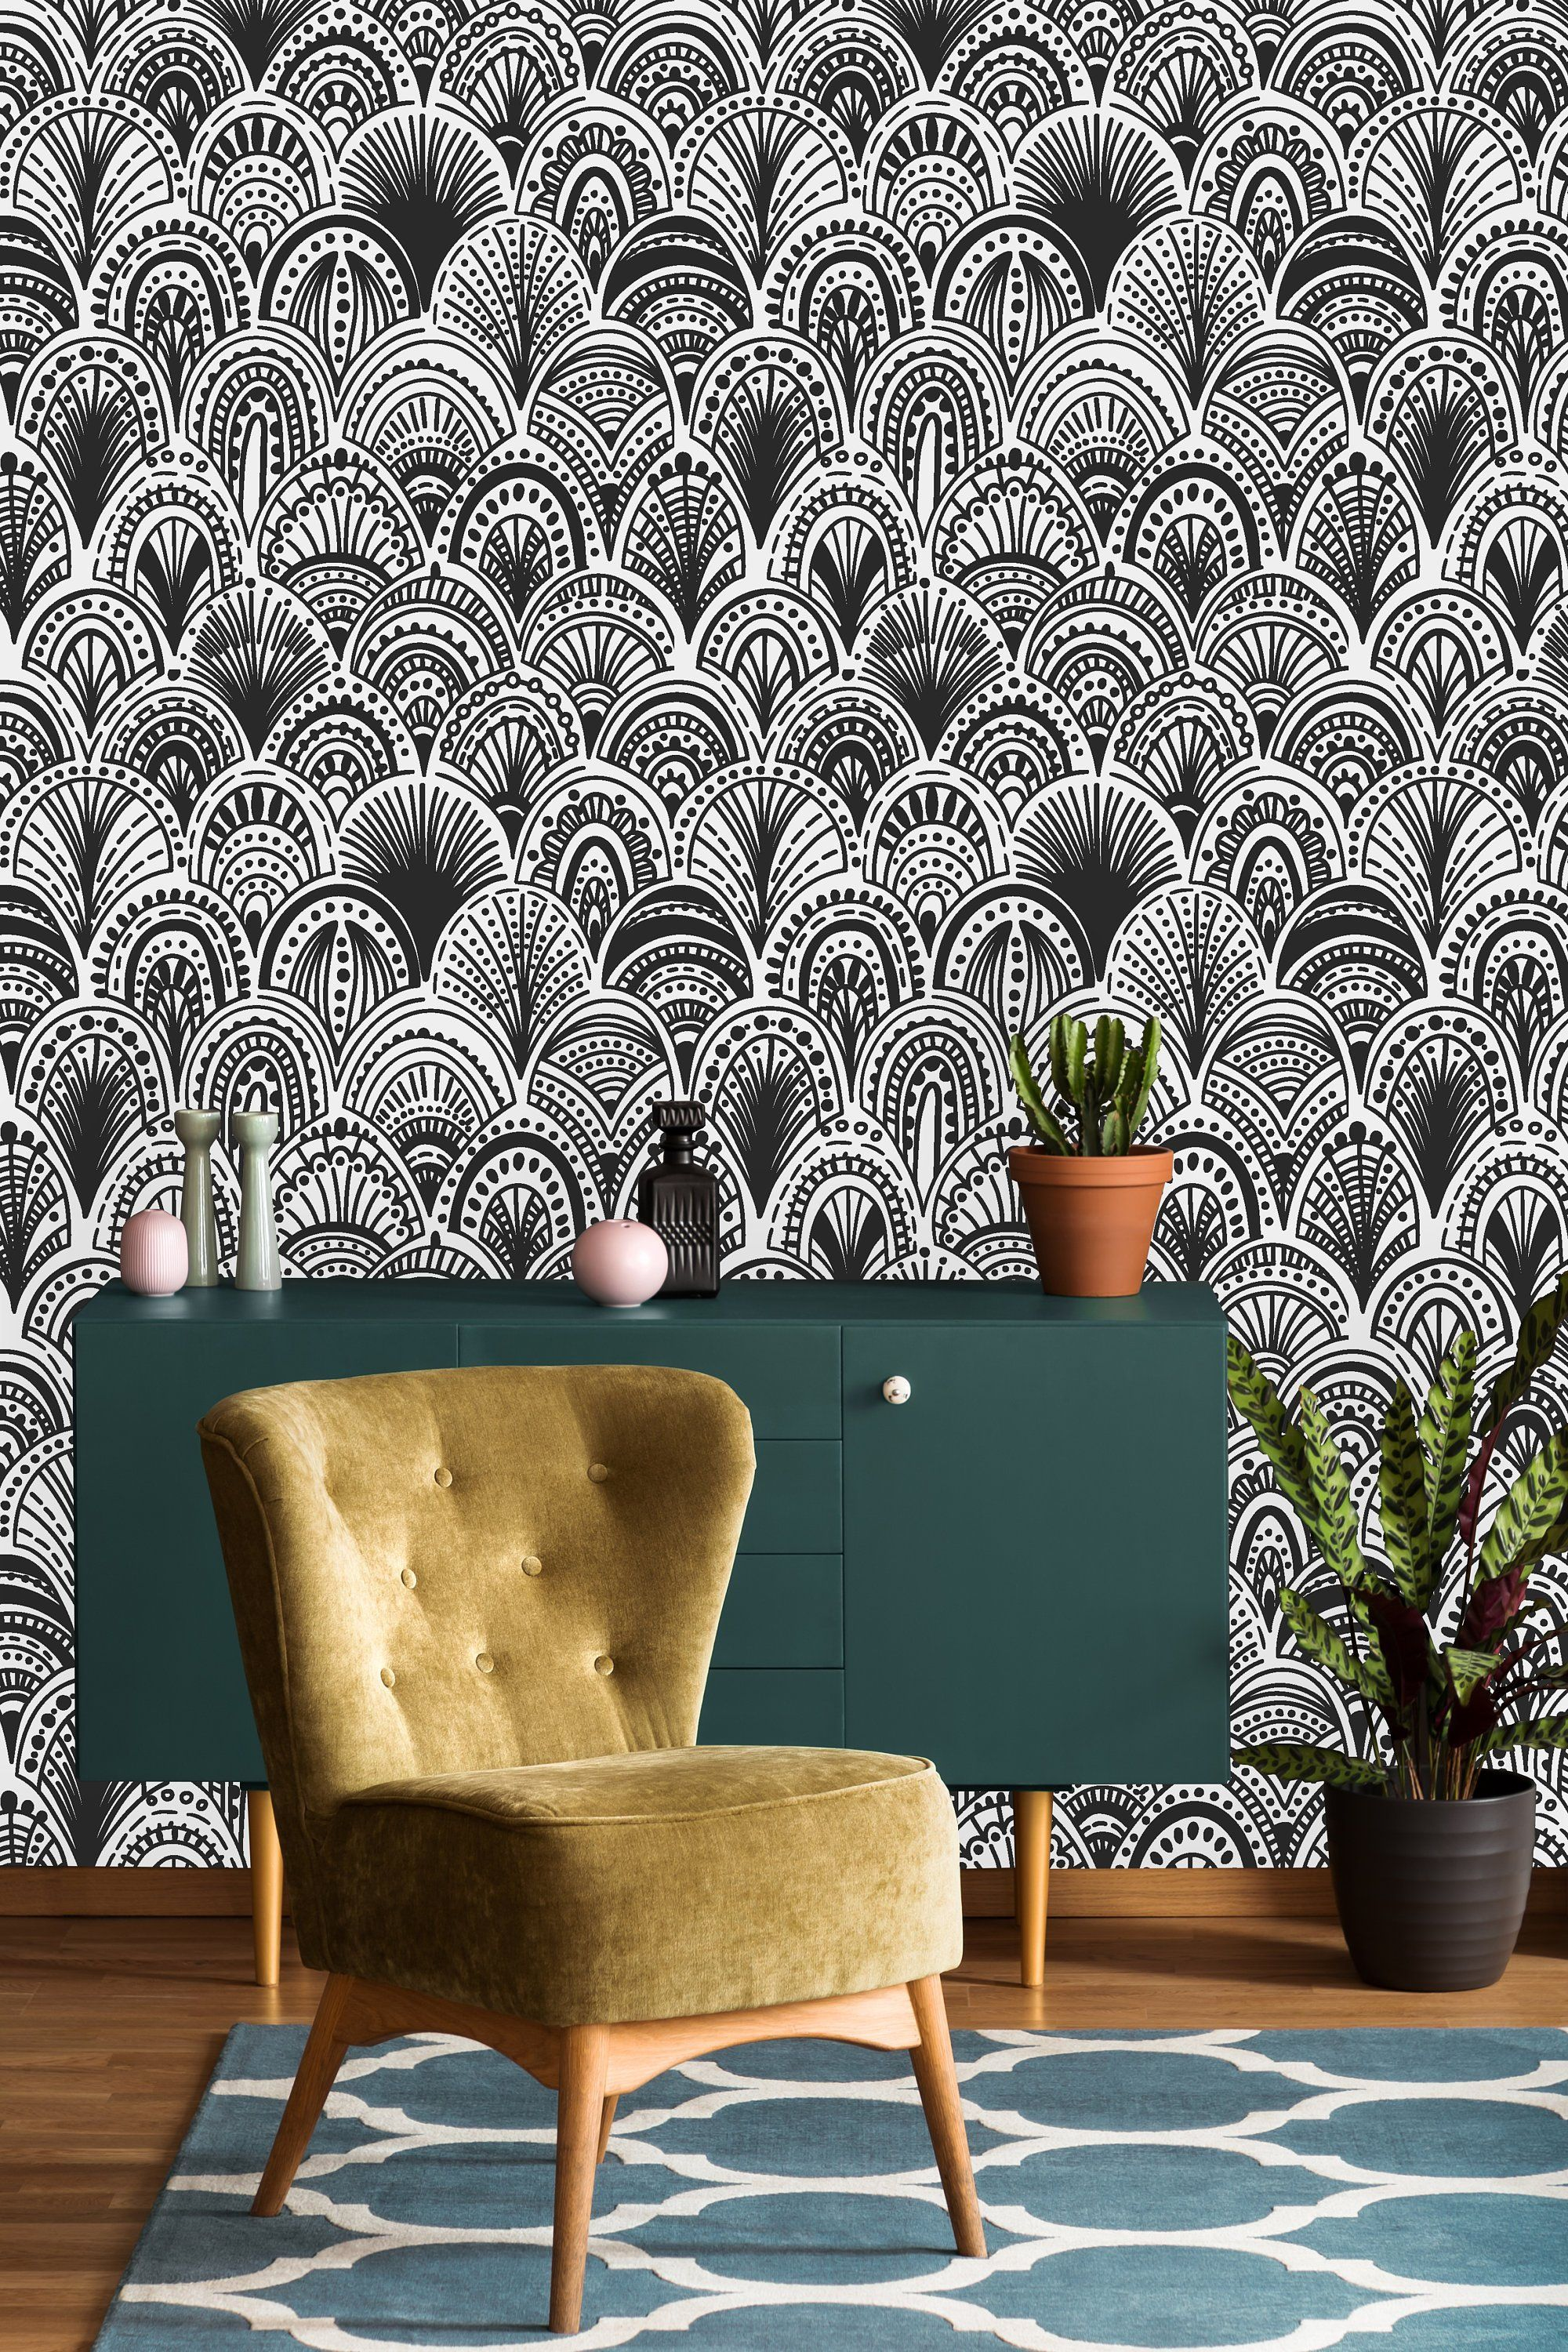 Black And White Bohemian Removable Wallpaper Peel And Stick Wallpaper Wall Mural Self A Removable Wallpaper Peel And Stick Wallpaper Black And White Wallpaper